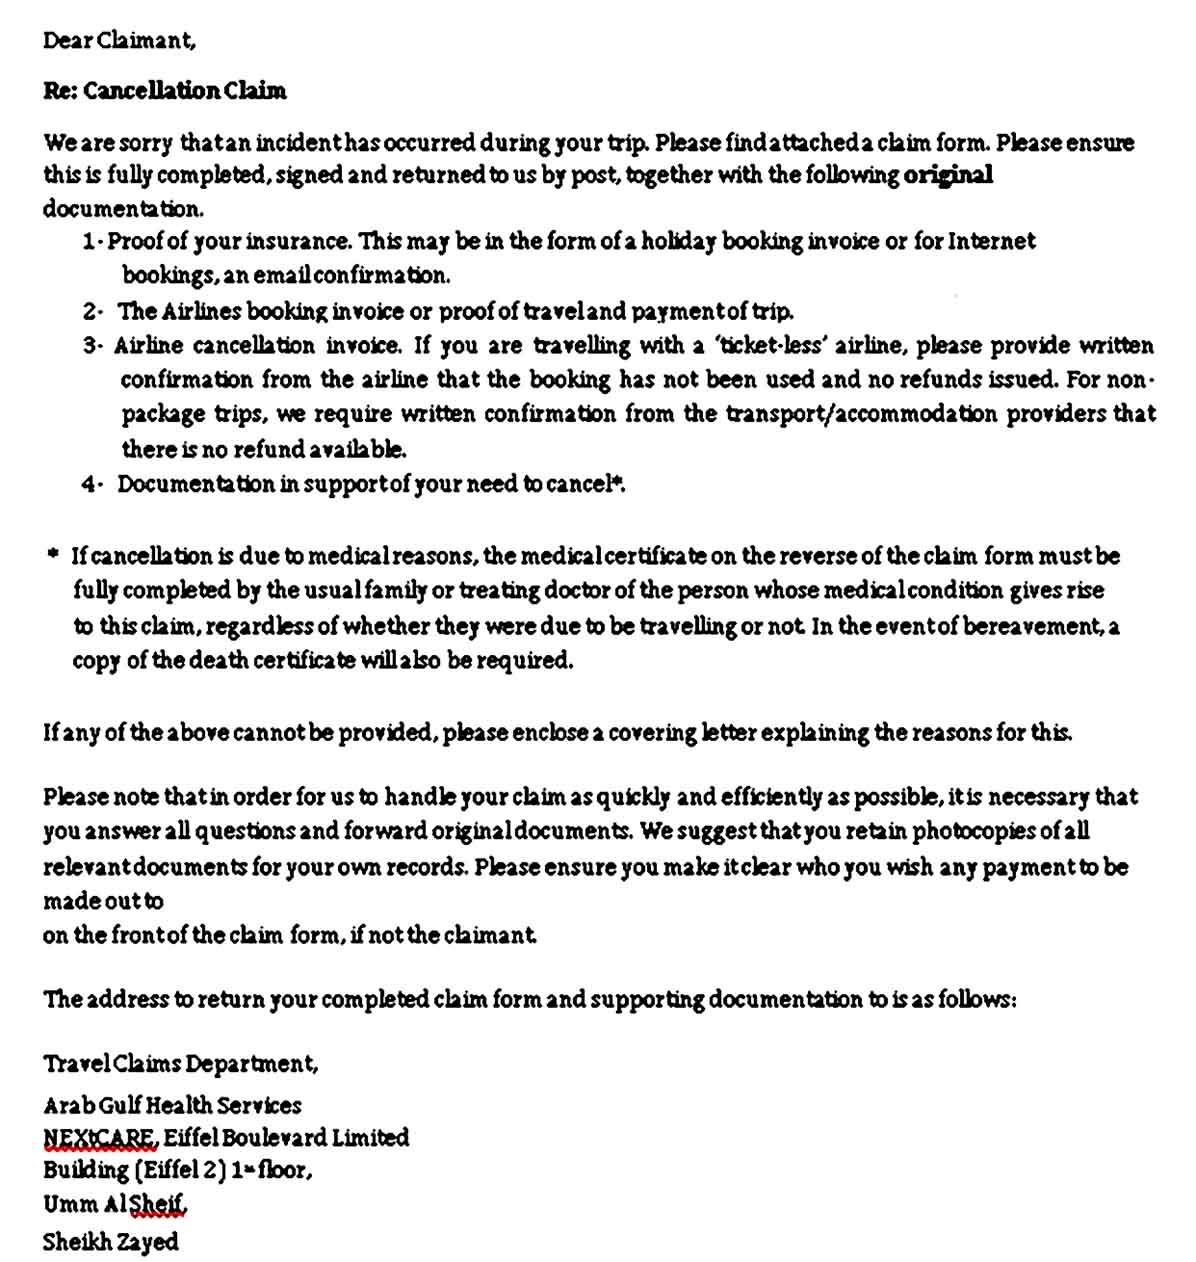 Sample Doctors Note For Travel Claim Cancellation Form Printable